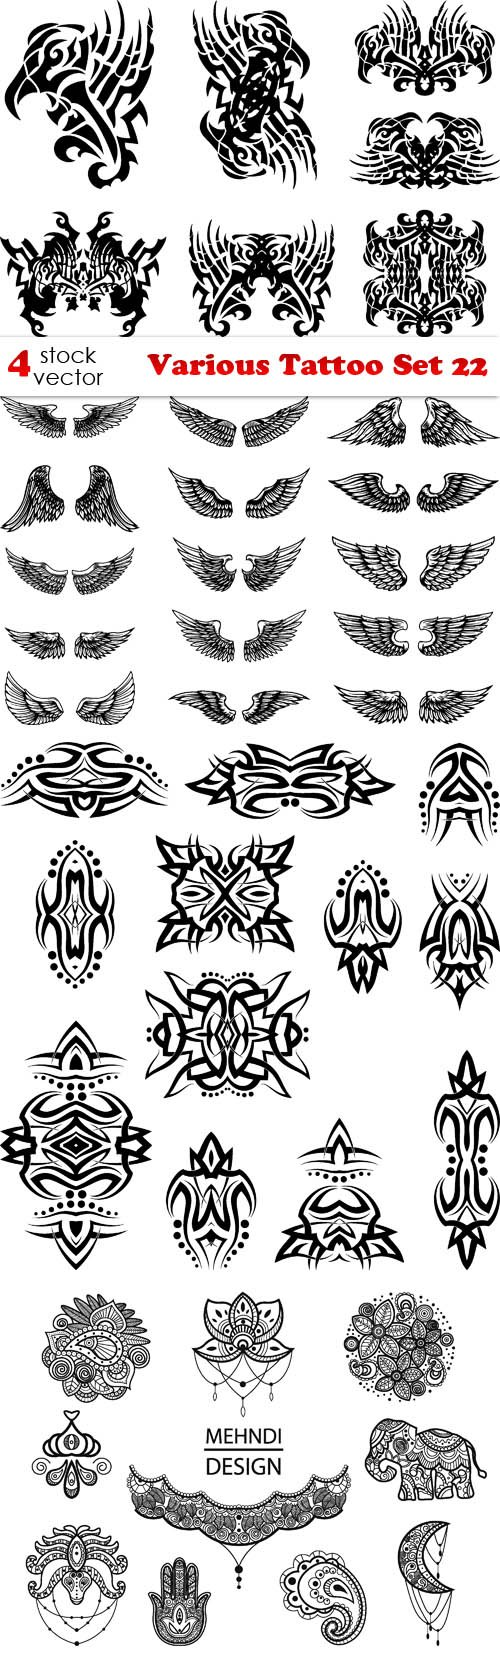 Vectors - Various Tattoo Set 22